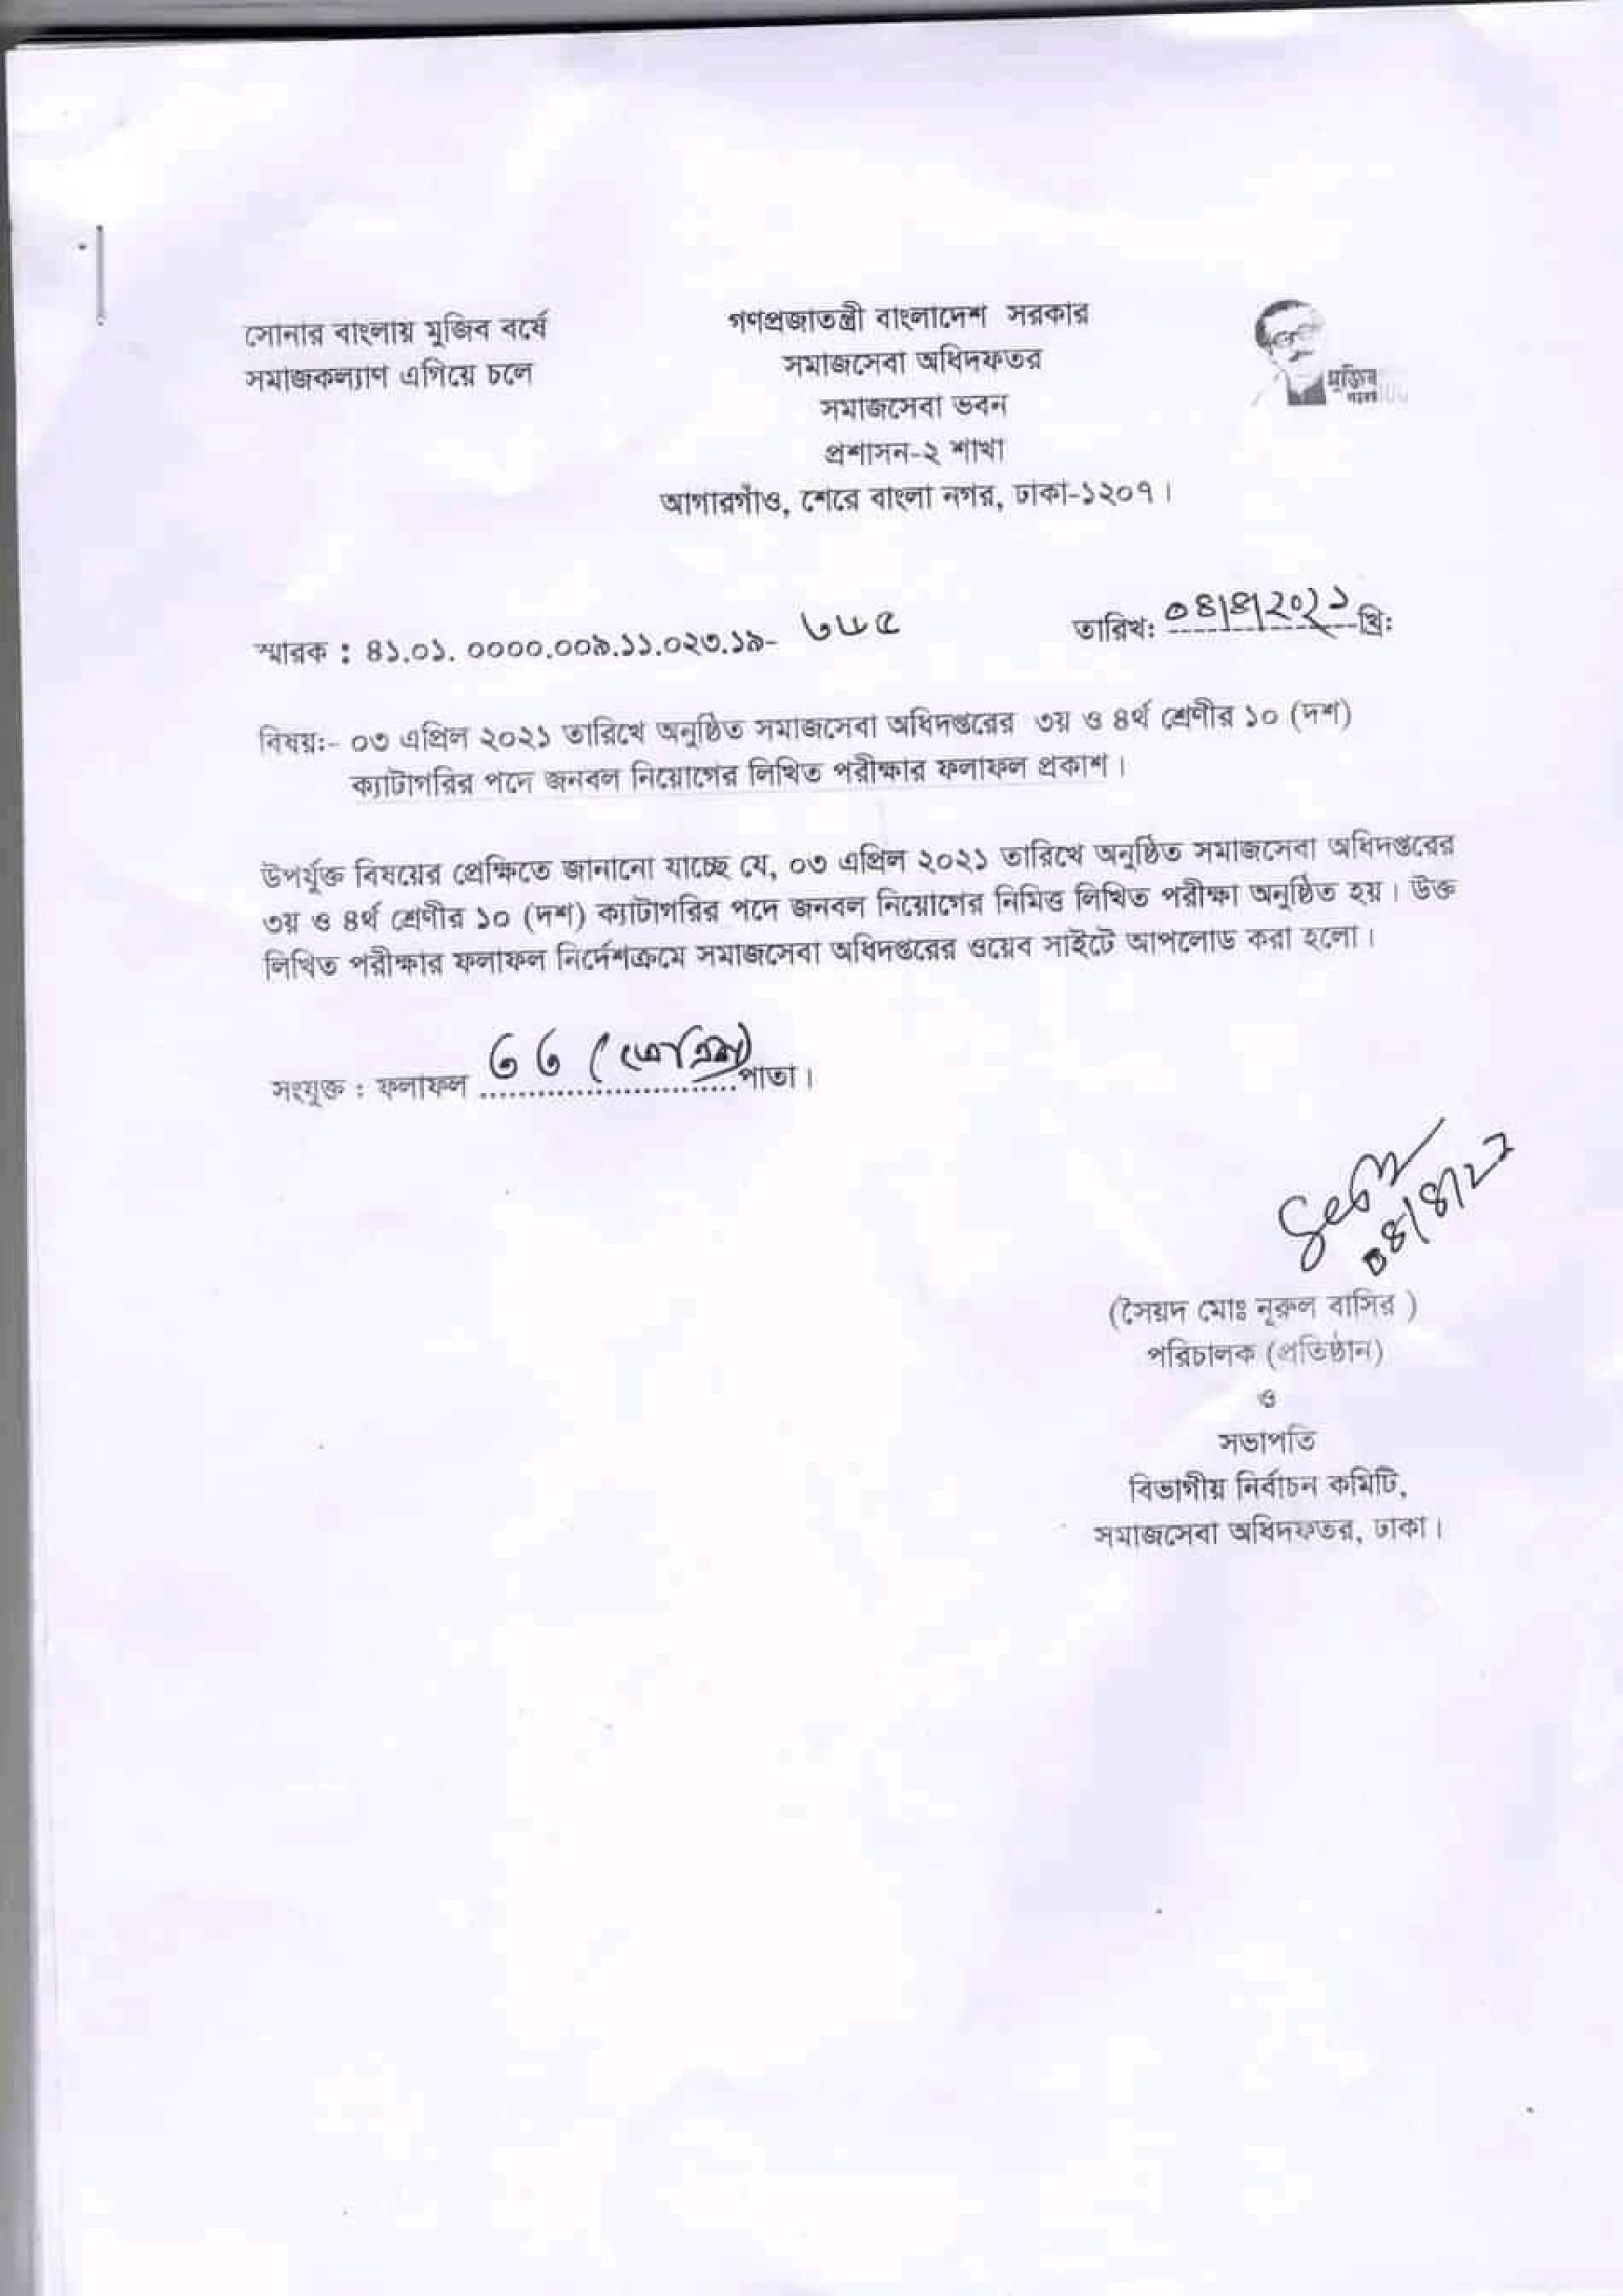 dss-result-page-001